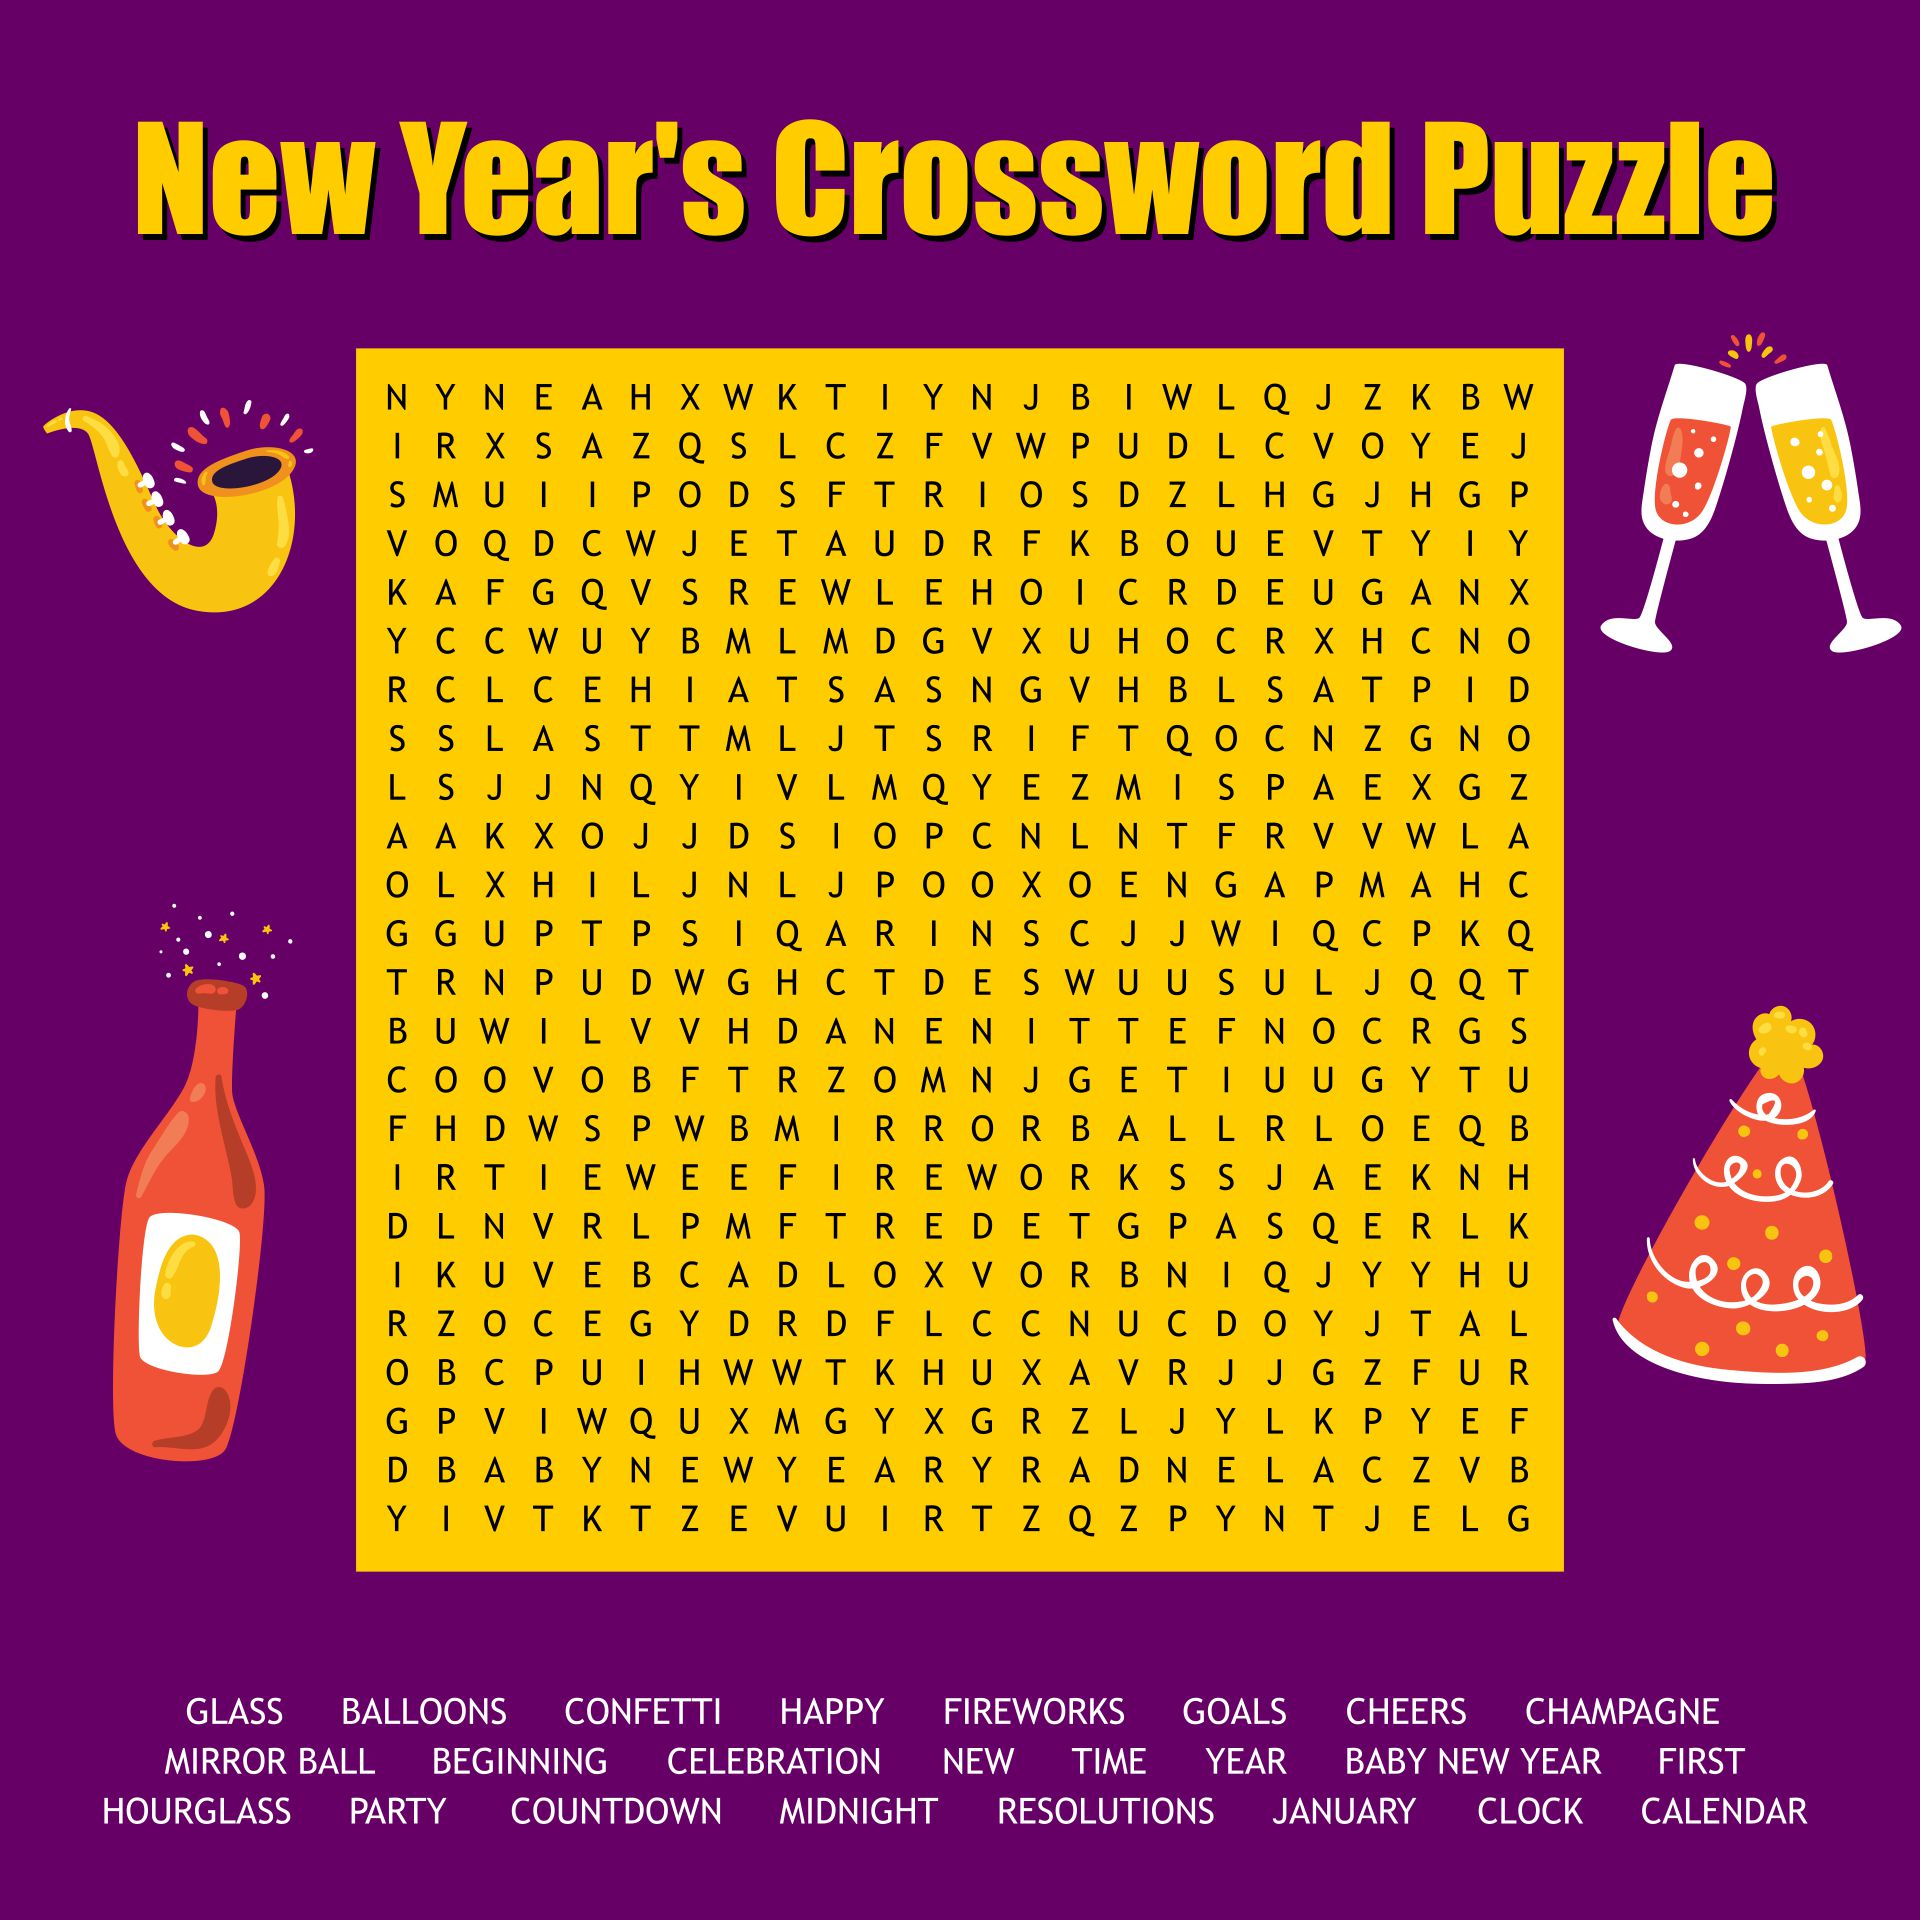 New Year Word Search Puzzle Printable